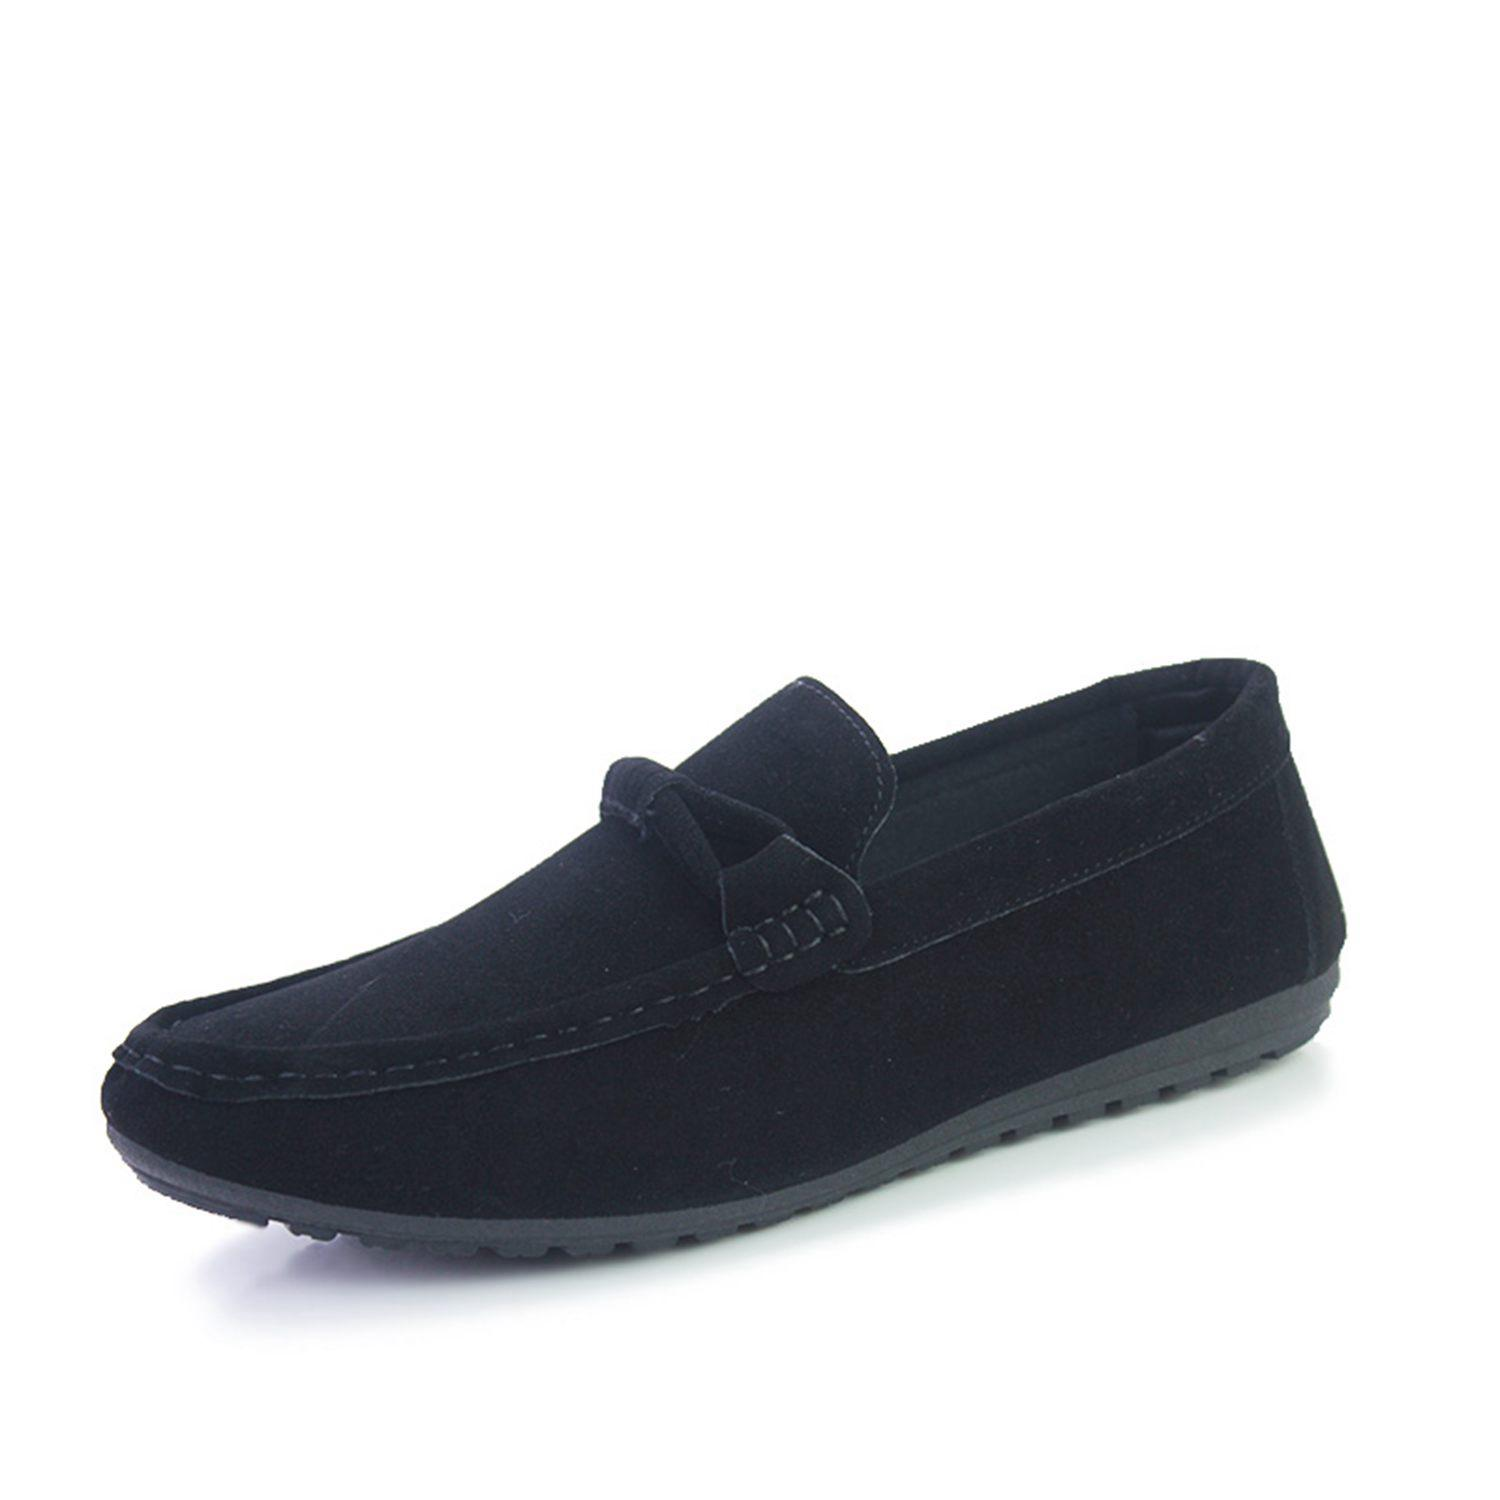 ABDB-Suede Leather Men Flats 2018 New Soft Men Casual Shoes High Quality Men Loafers Flats Gommino Driving Shoes Black 44 new handmade spring summer soft dough leather flats quality leather men loafers men moccasin casual shoes driving shoes